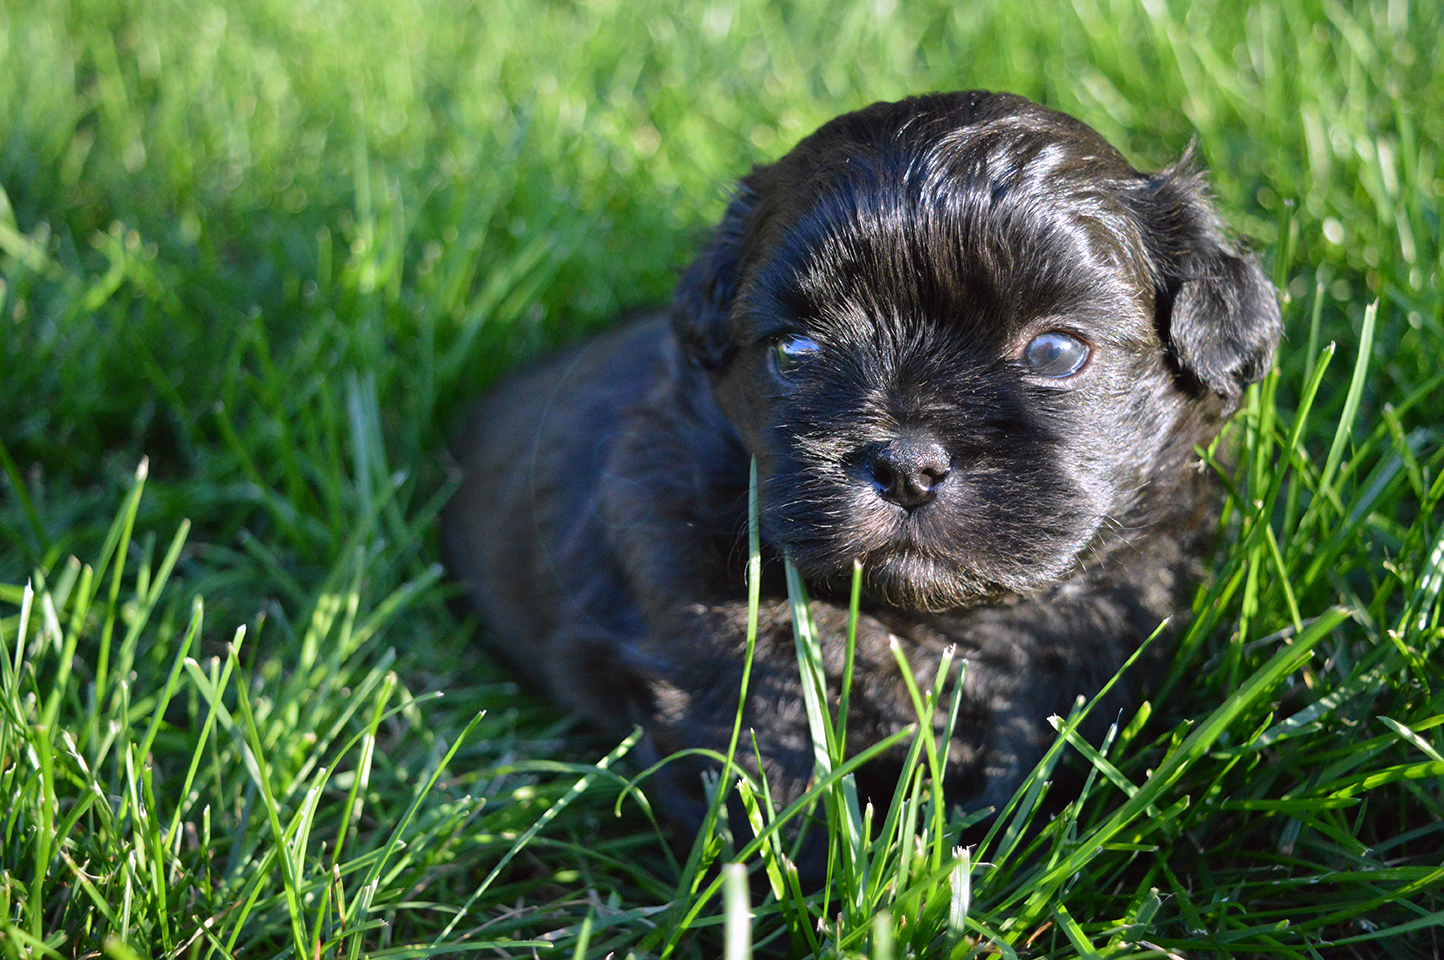 Puppy's first time in the Grass